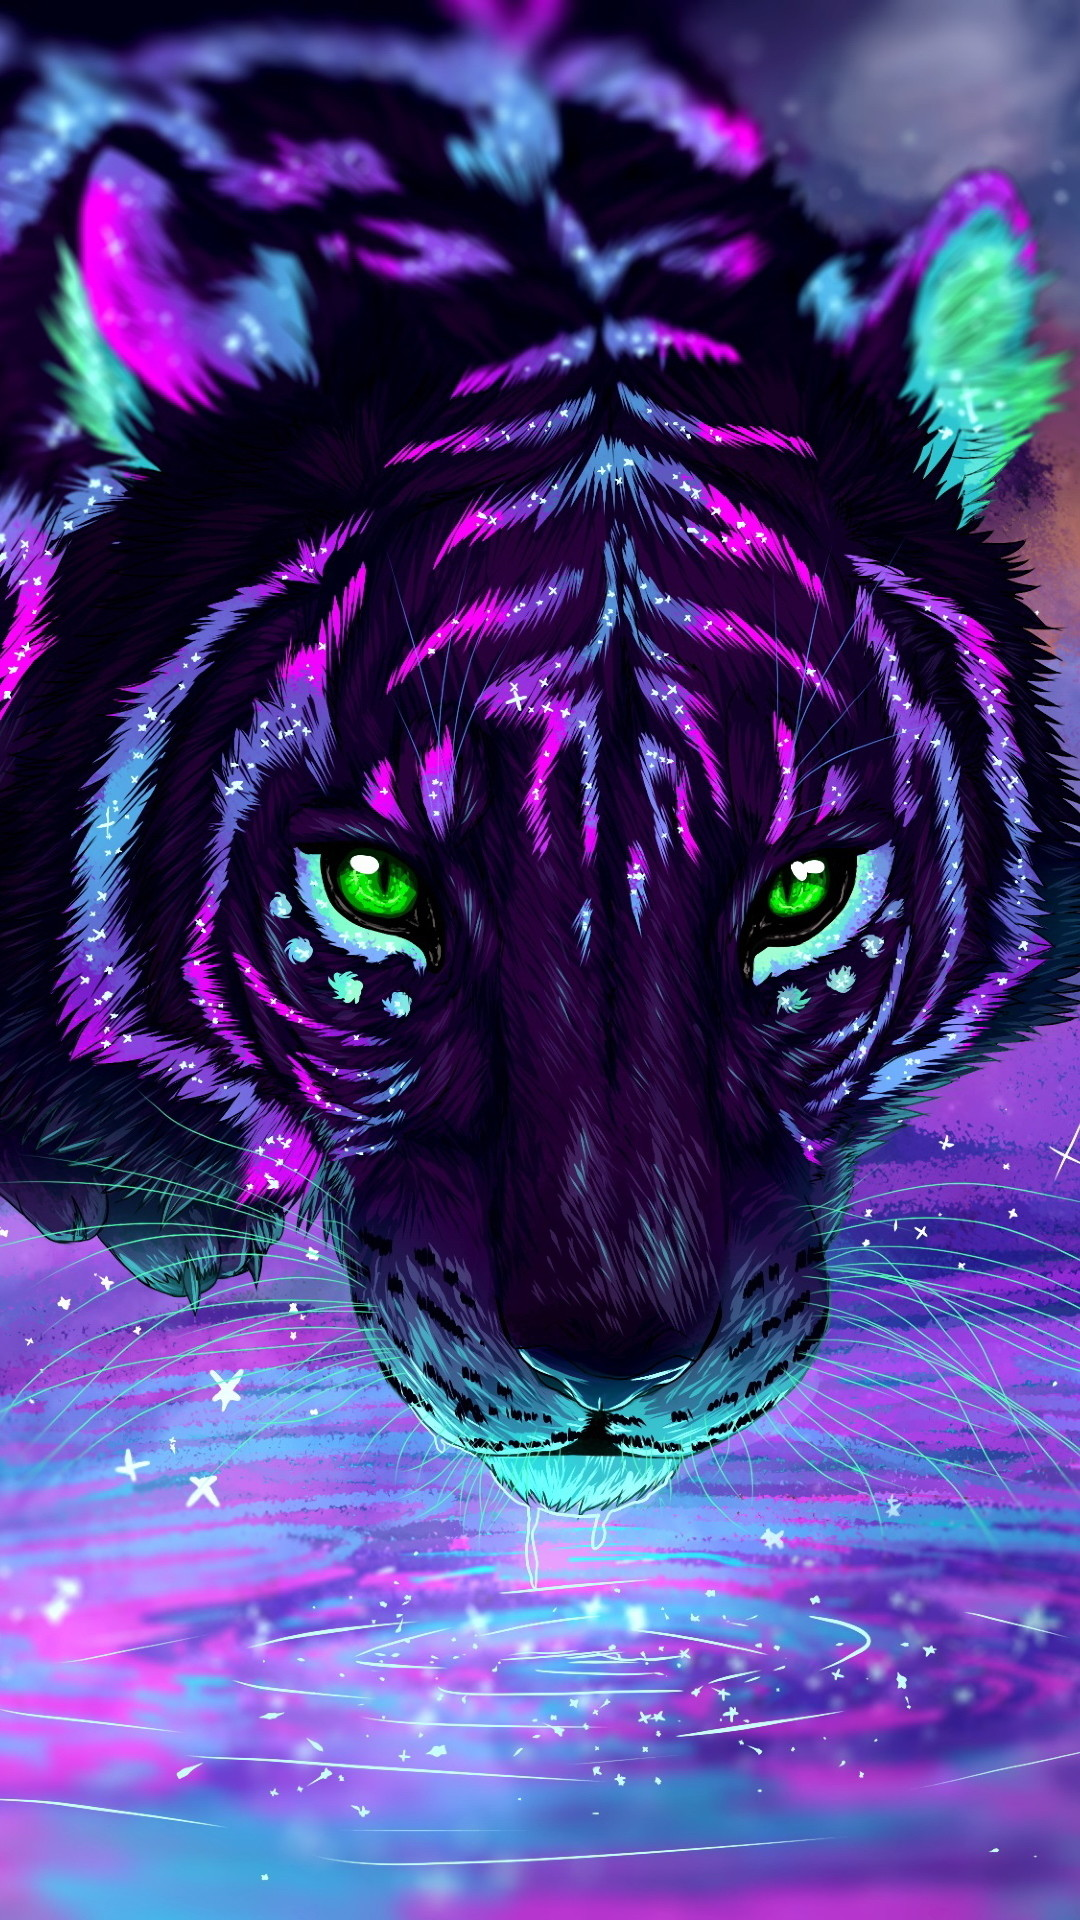 Res: 1080x1920, Neon Tiger Wallpaper 13